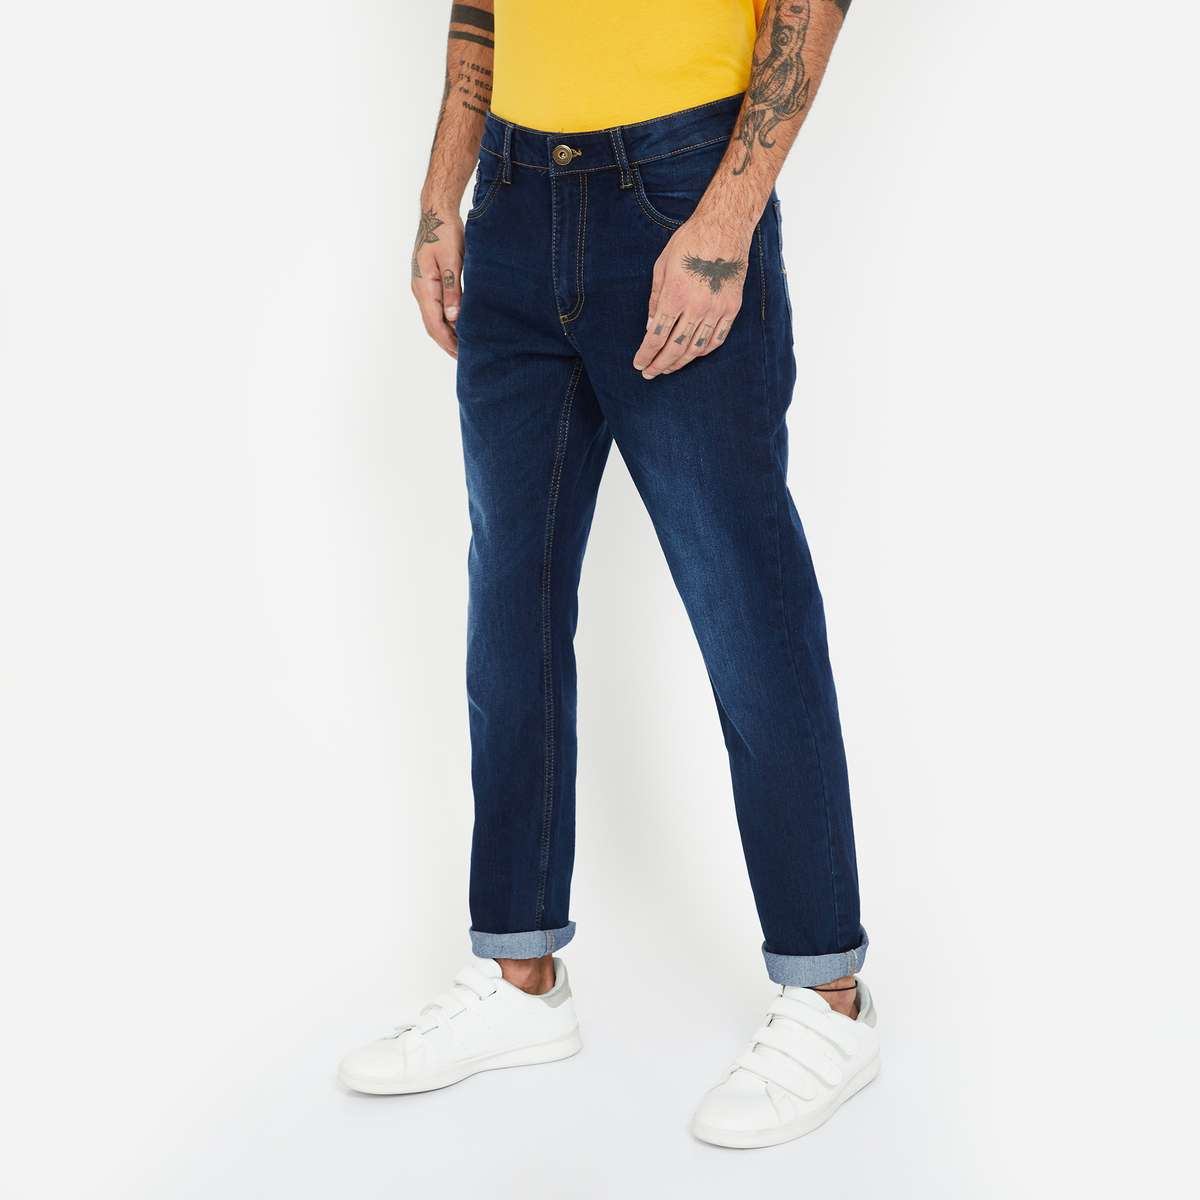 1.FORCA Dark Washed Slim Fit Jeans